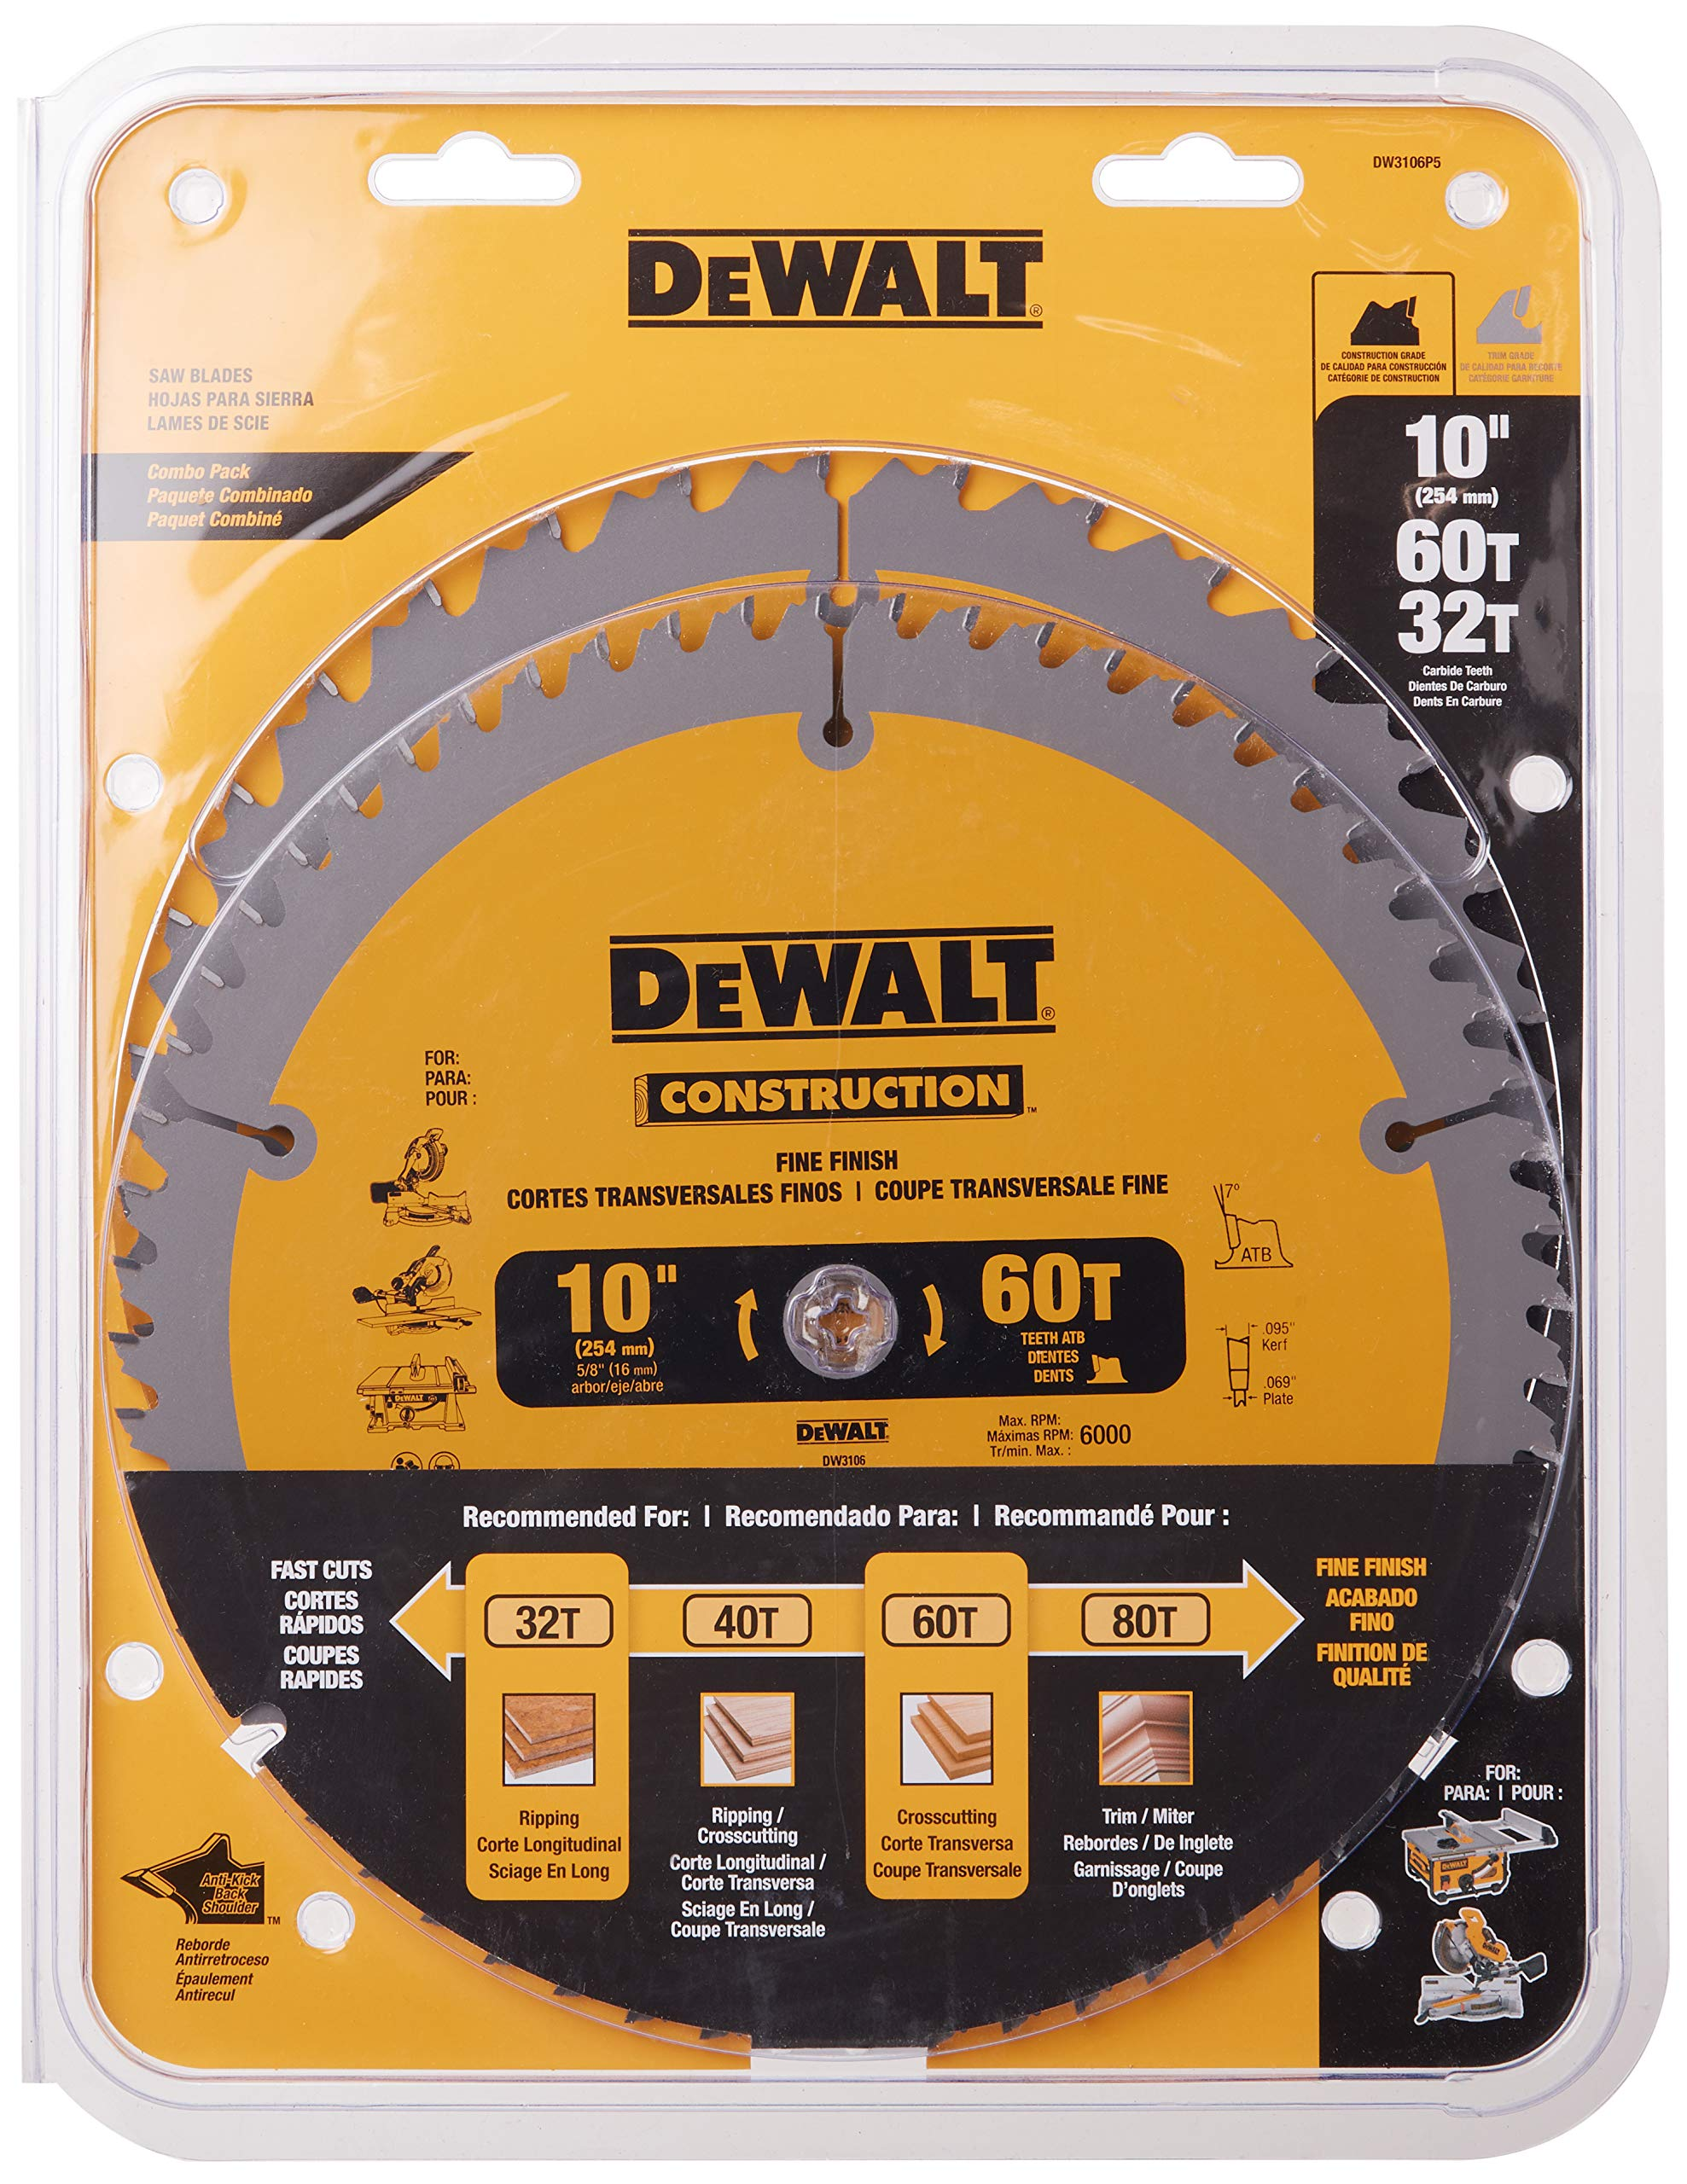 DEWALT 10-Inch Miter / Table Saw Blades, 60-Tooth Crosscutting & 32-Tooth General Purpose, Combo Pack (DW3106P5)